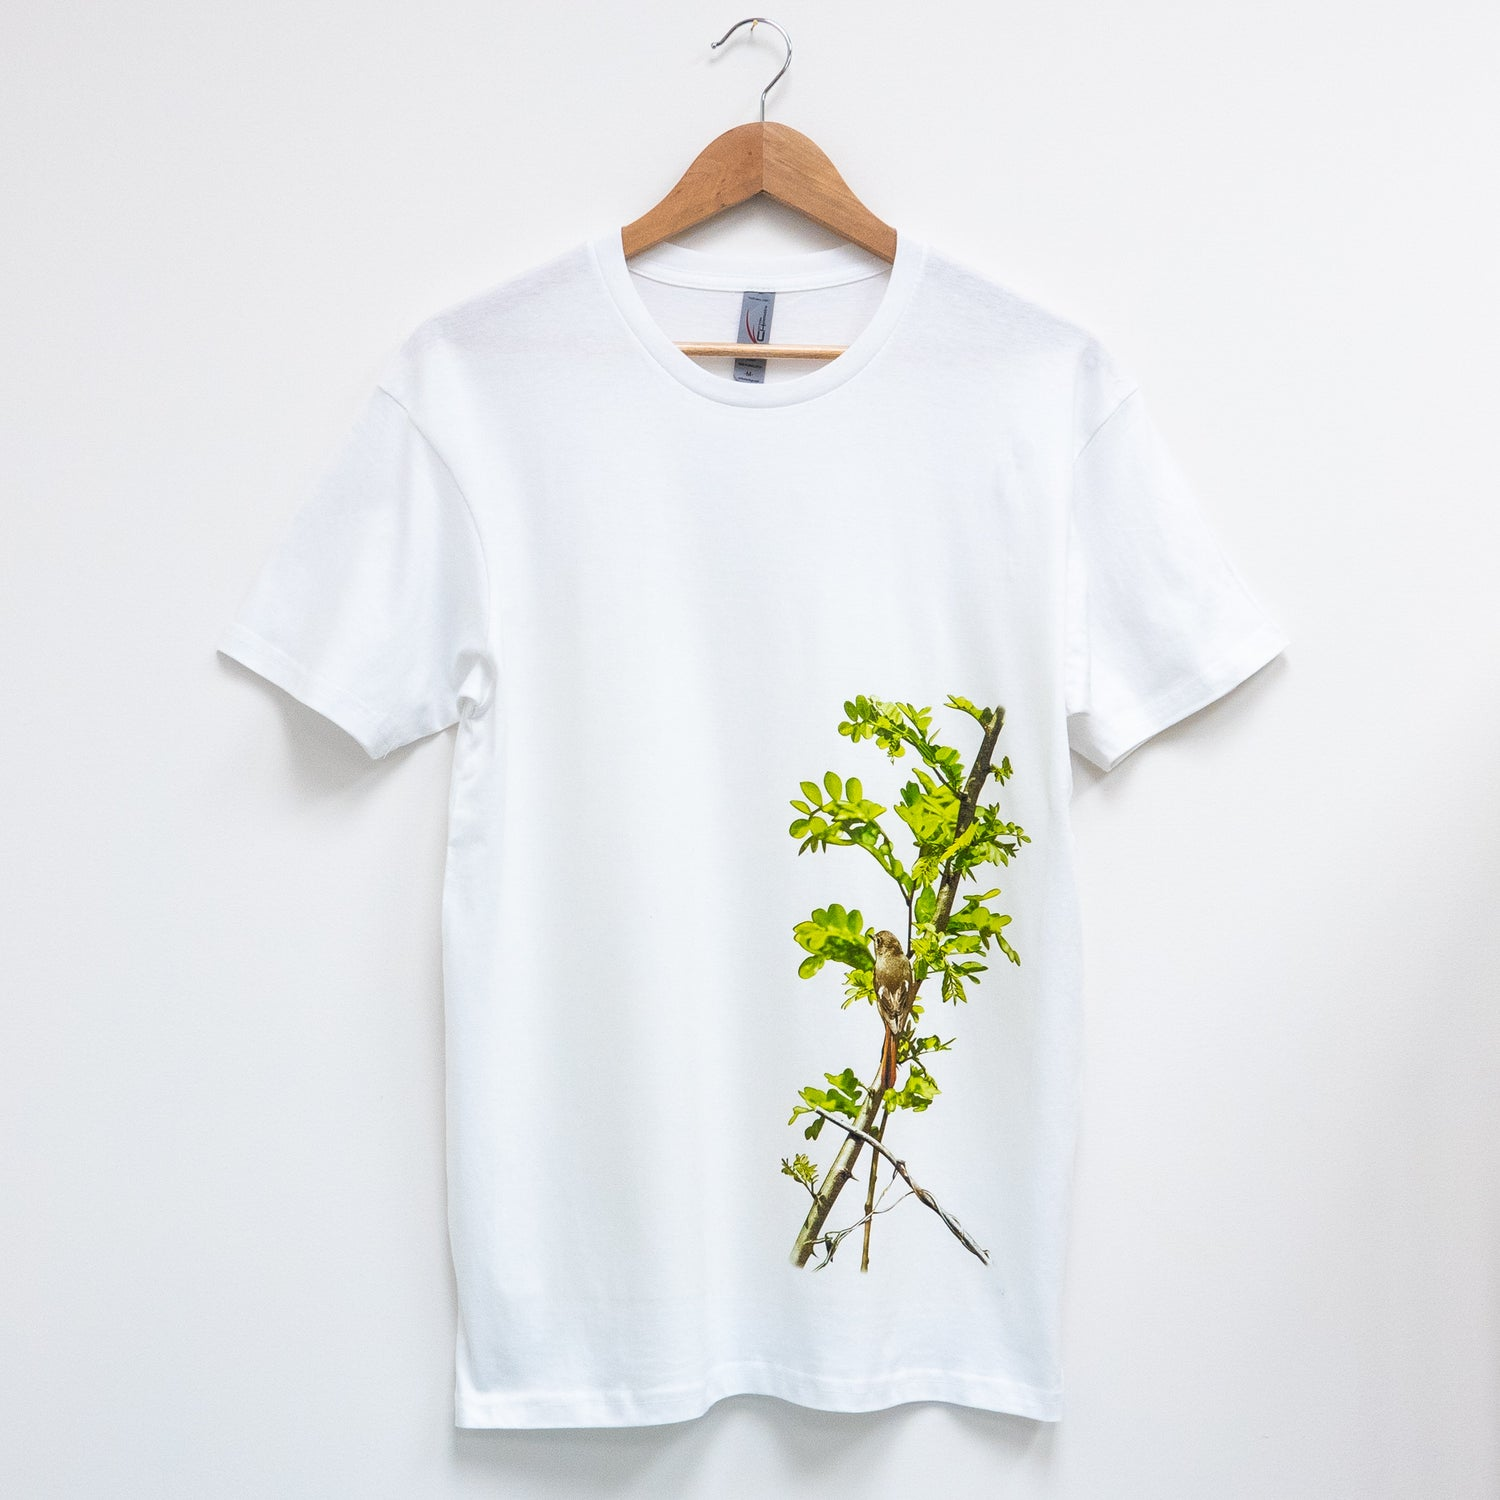 Custom T Shirt - Daurian Redstart